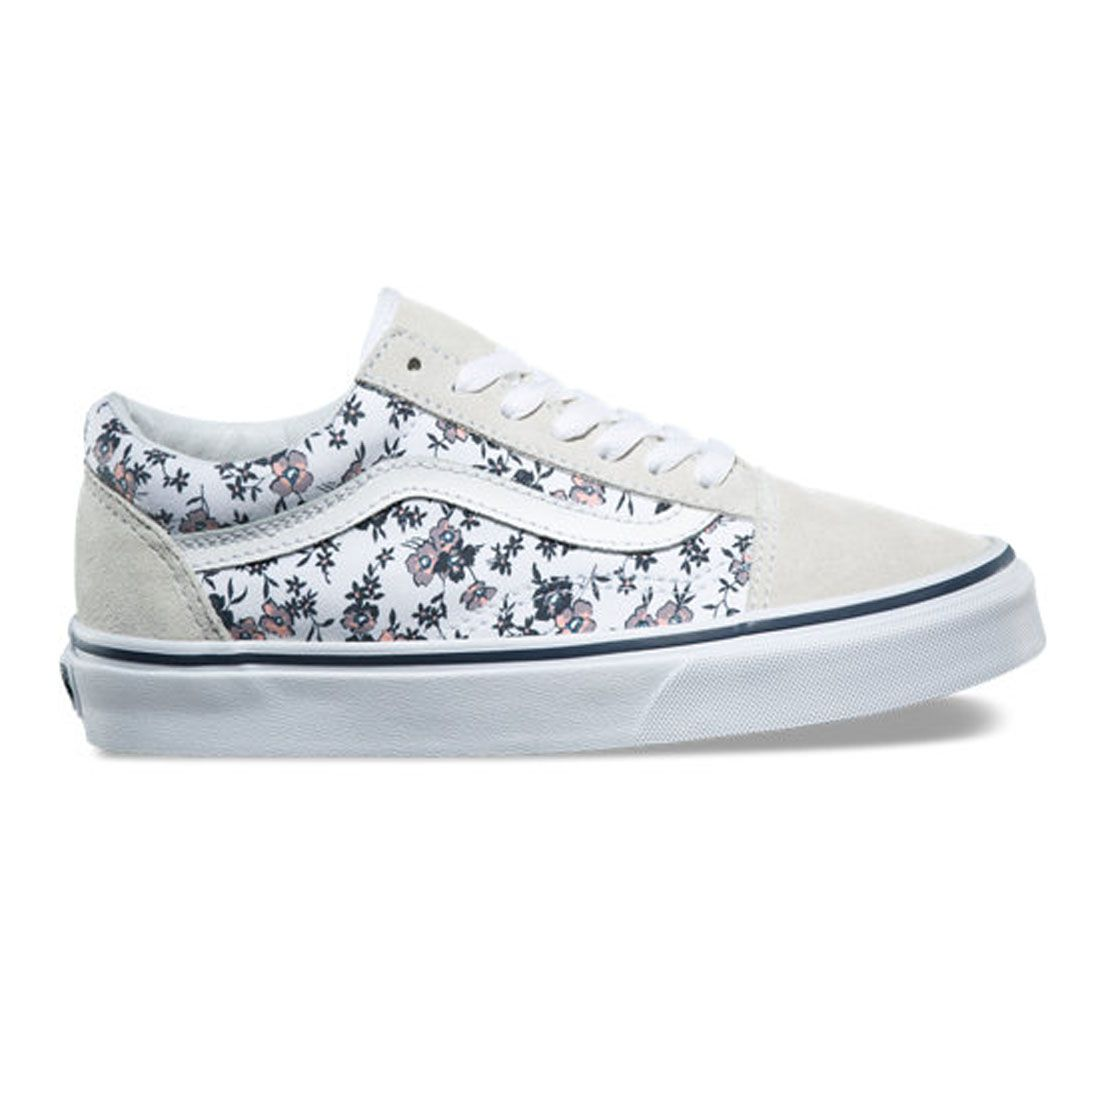 44f8aa76382 Tênis Vans Old Skool Ditsy Bloom N.34